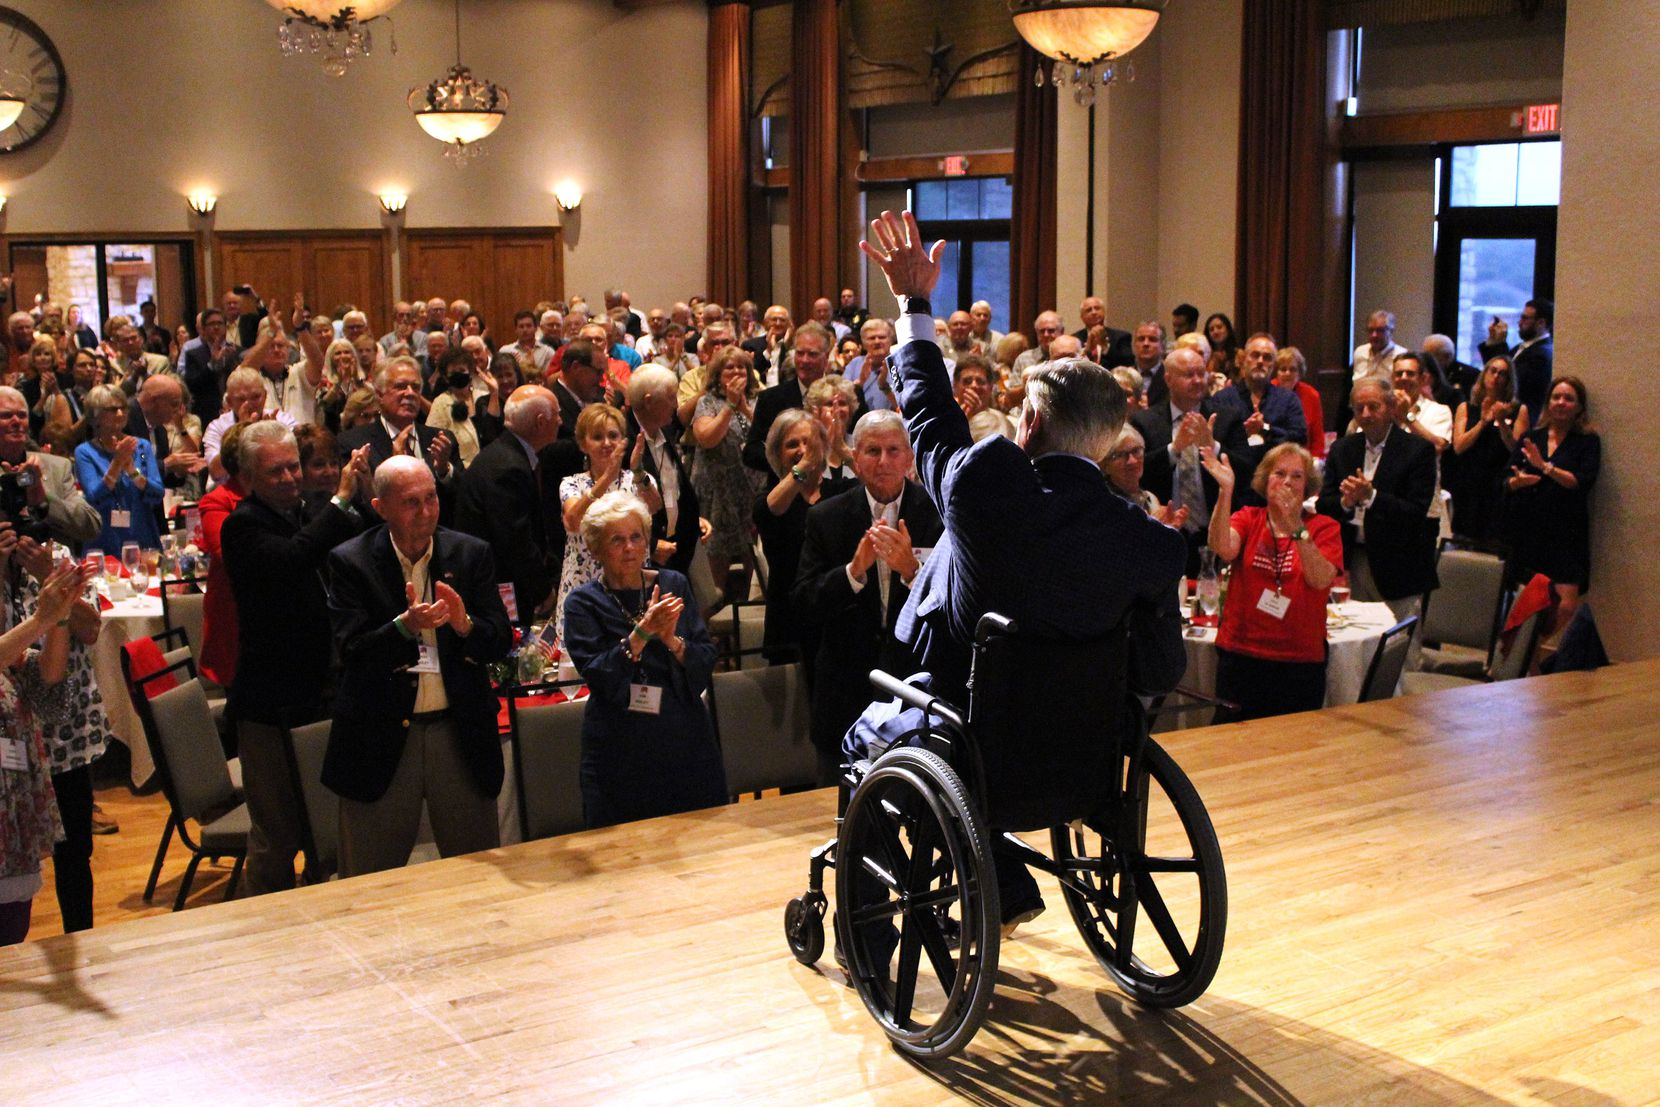 """Gov. Greg Abbott, who is up for re-election next year, tweeted this photo of himself at a Collin County Republican group on Aug. 17, shortly before he tested positive for COVID-19. """"Let's keep this energy up and send a message that Texas values are NOT up for grabs in 2022,"""" he wrote in the tweet."""